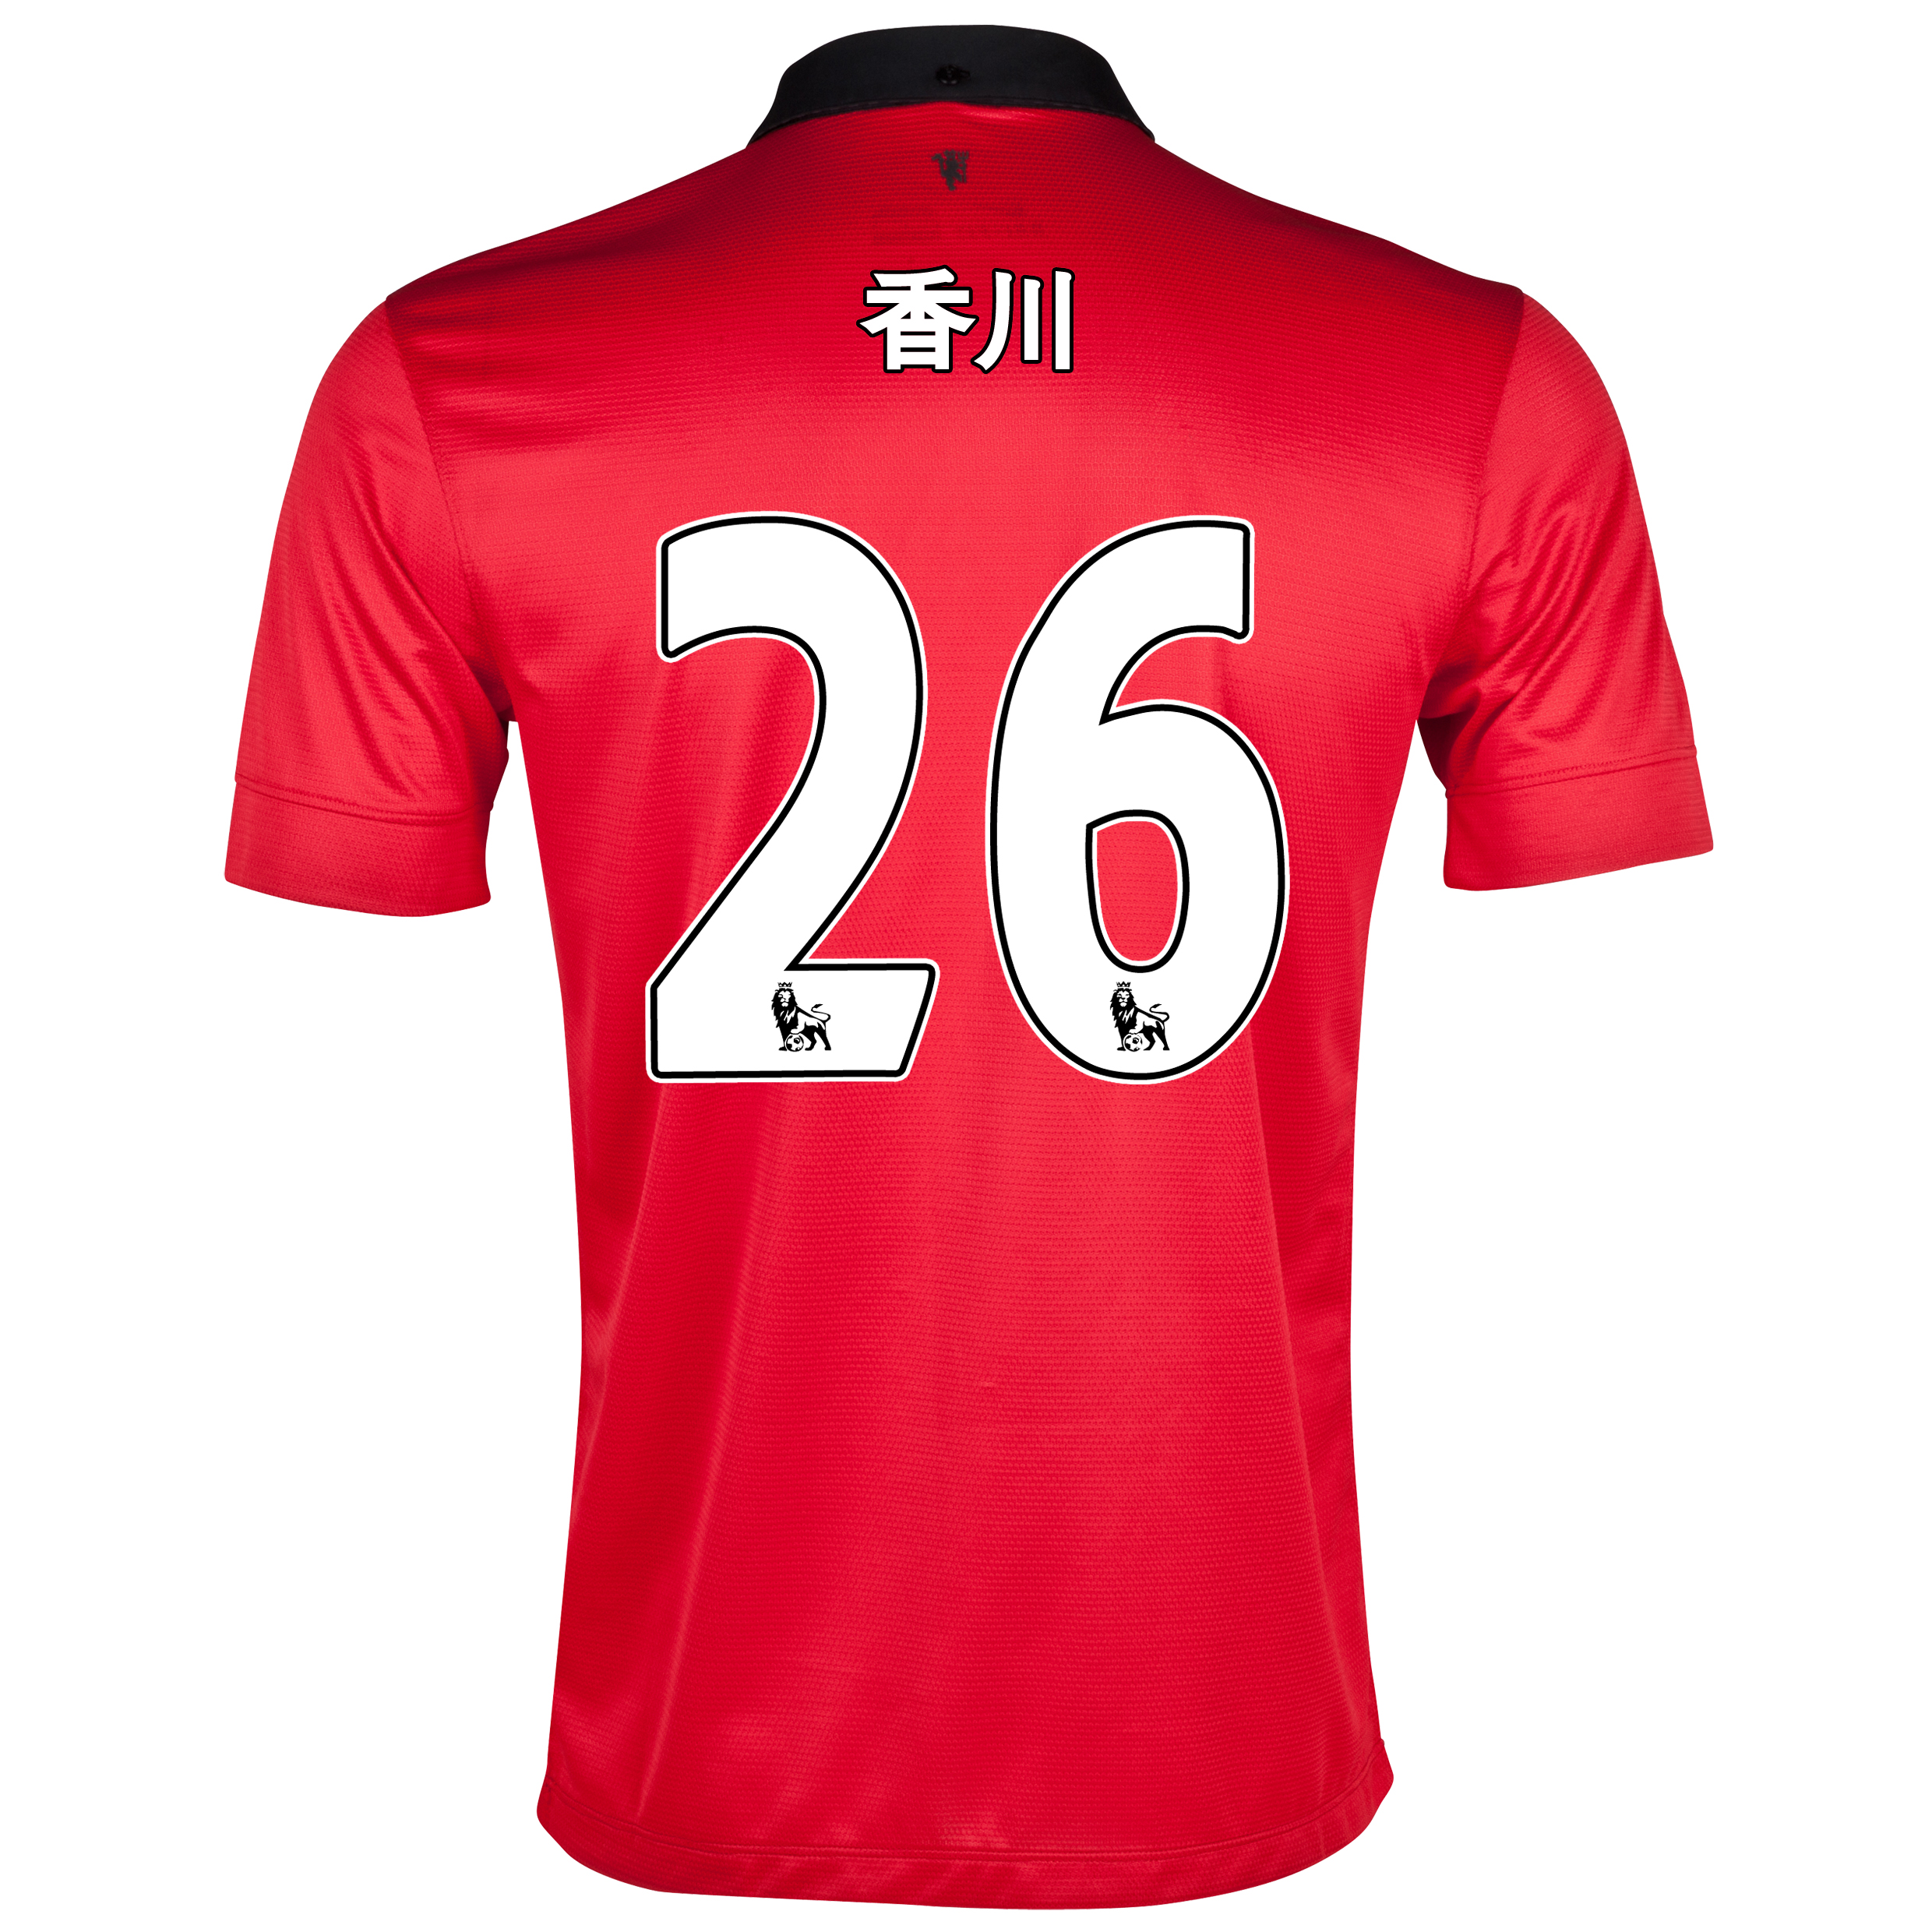 Manchester United Home Shirt 2013/14 - Kids with Kagawa 26 printing (Japanese)